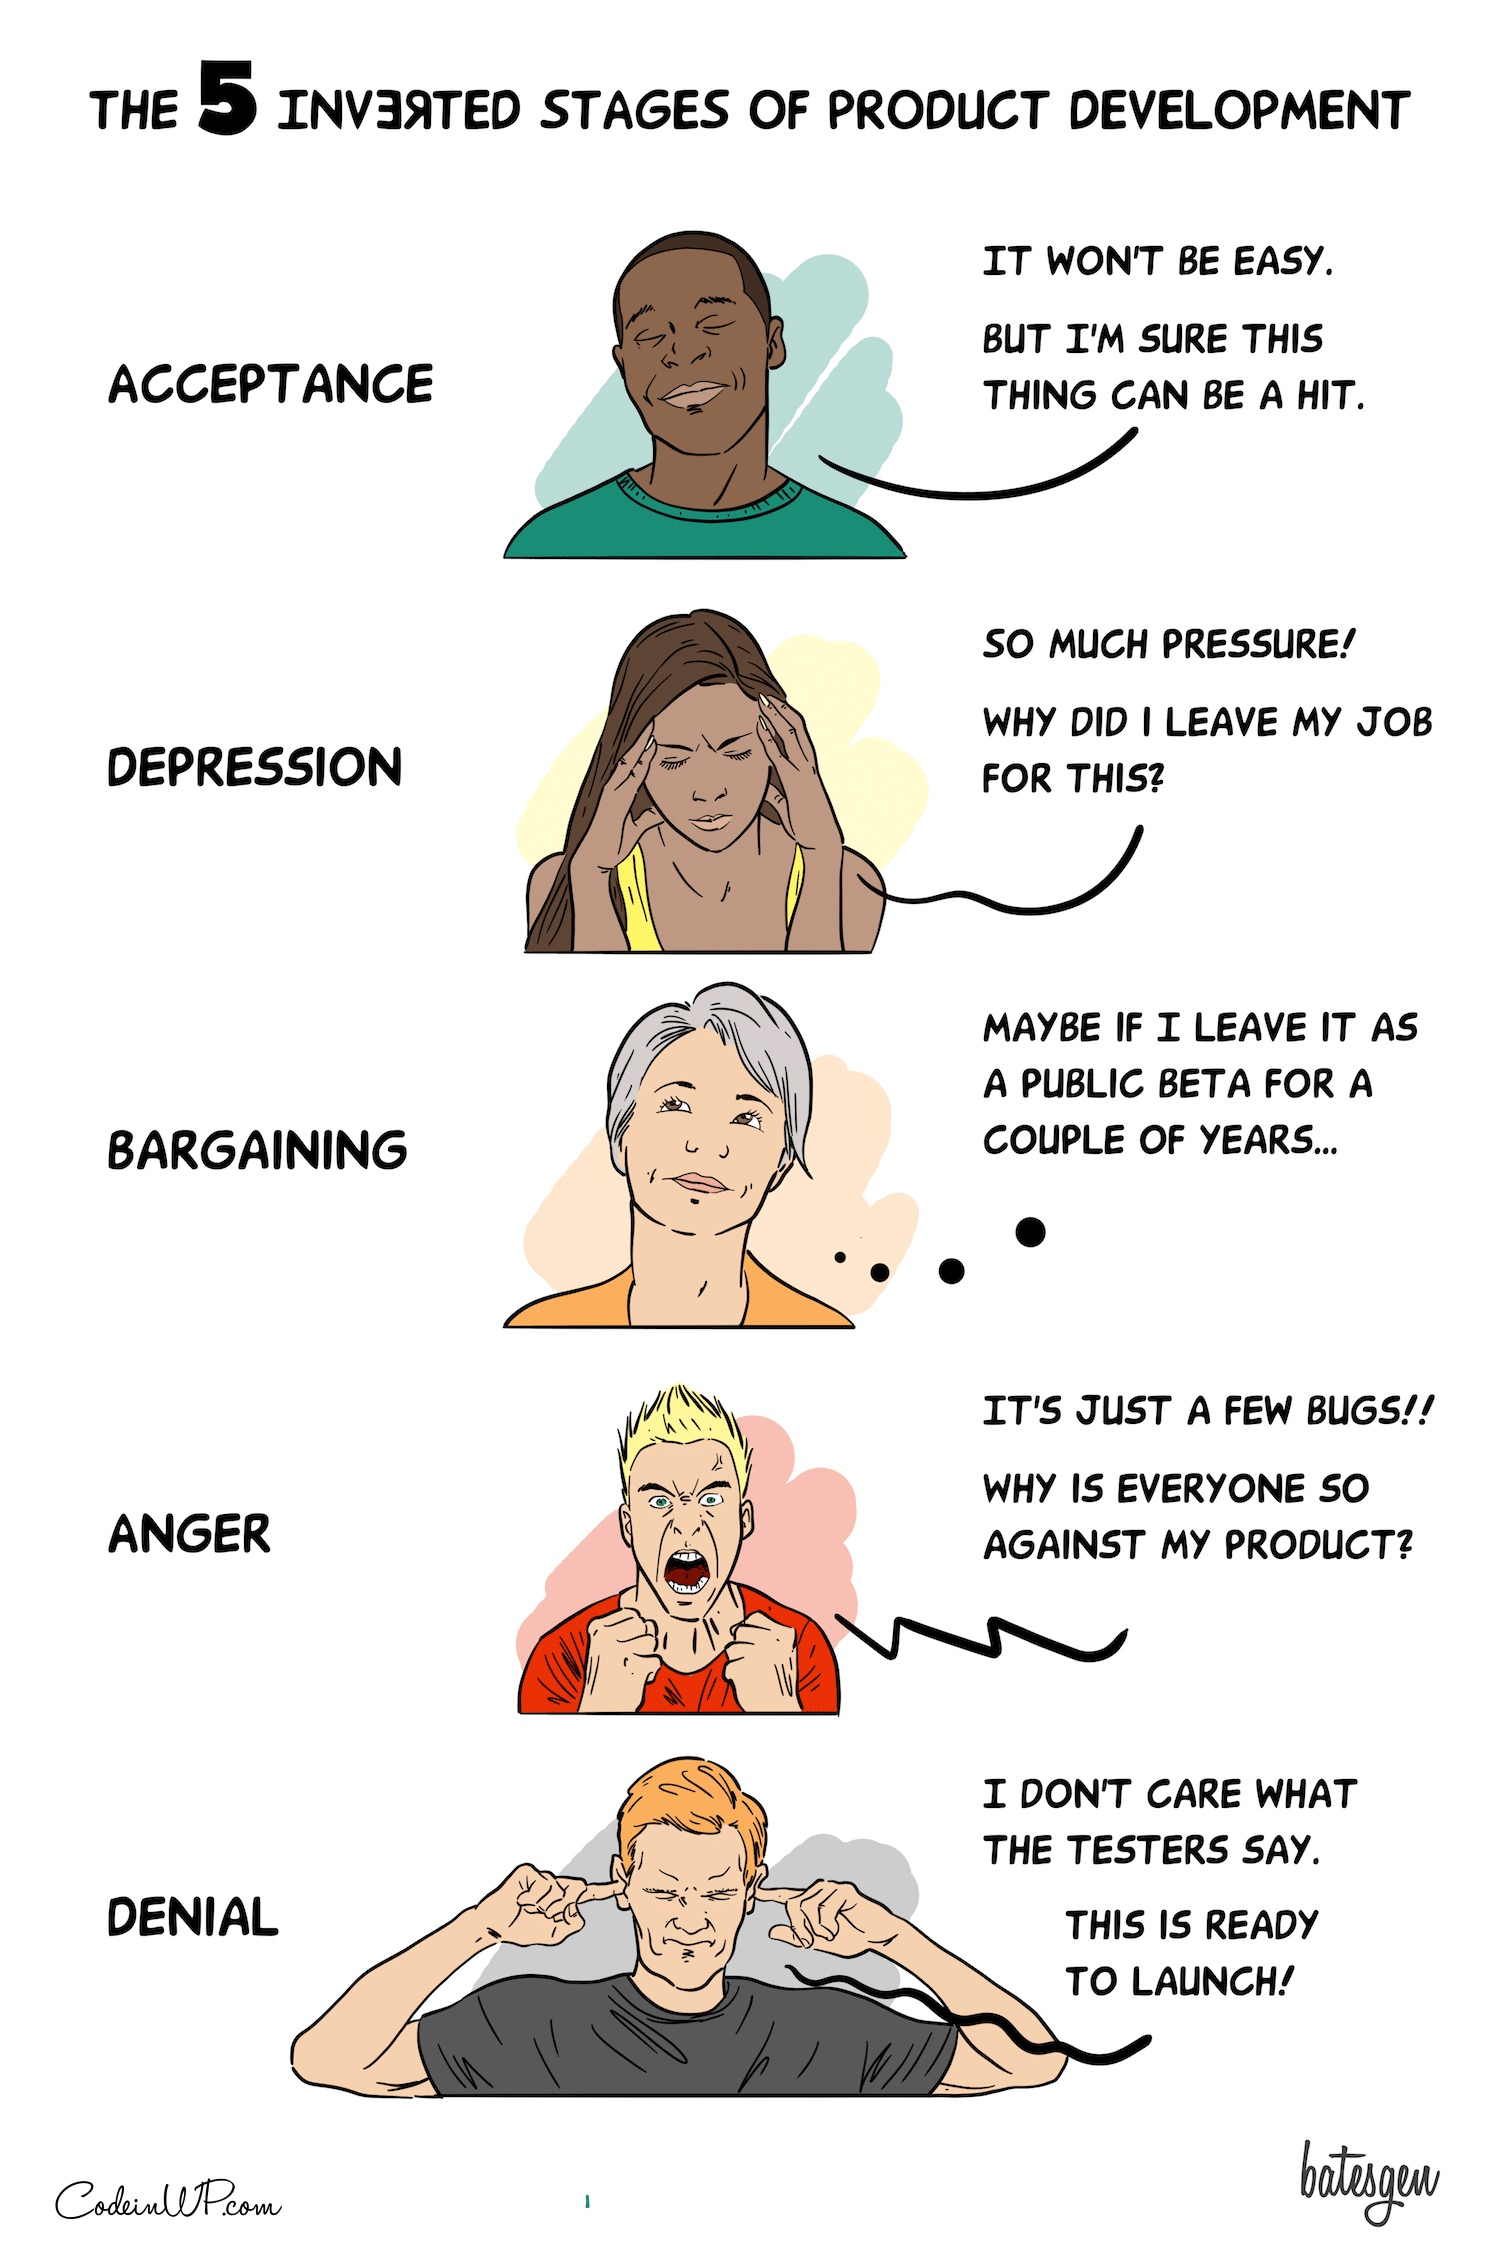 The five stages of grief reimagined as the stages of product development